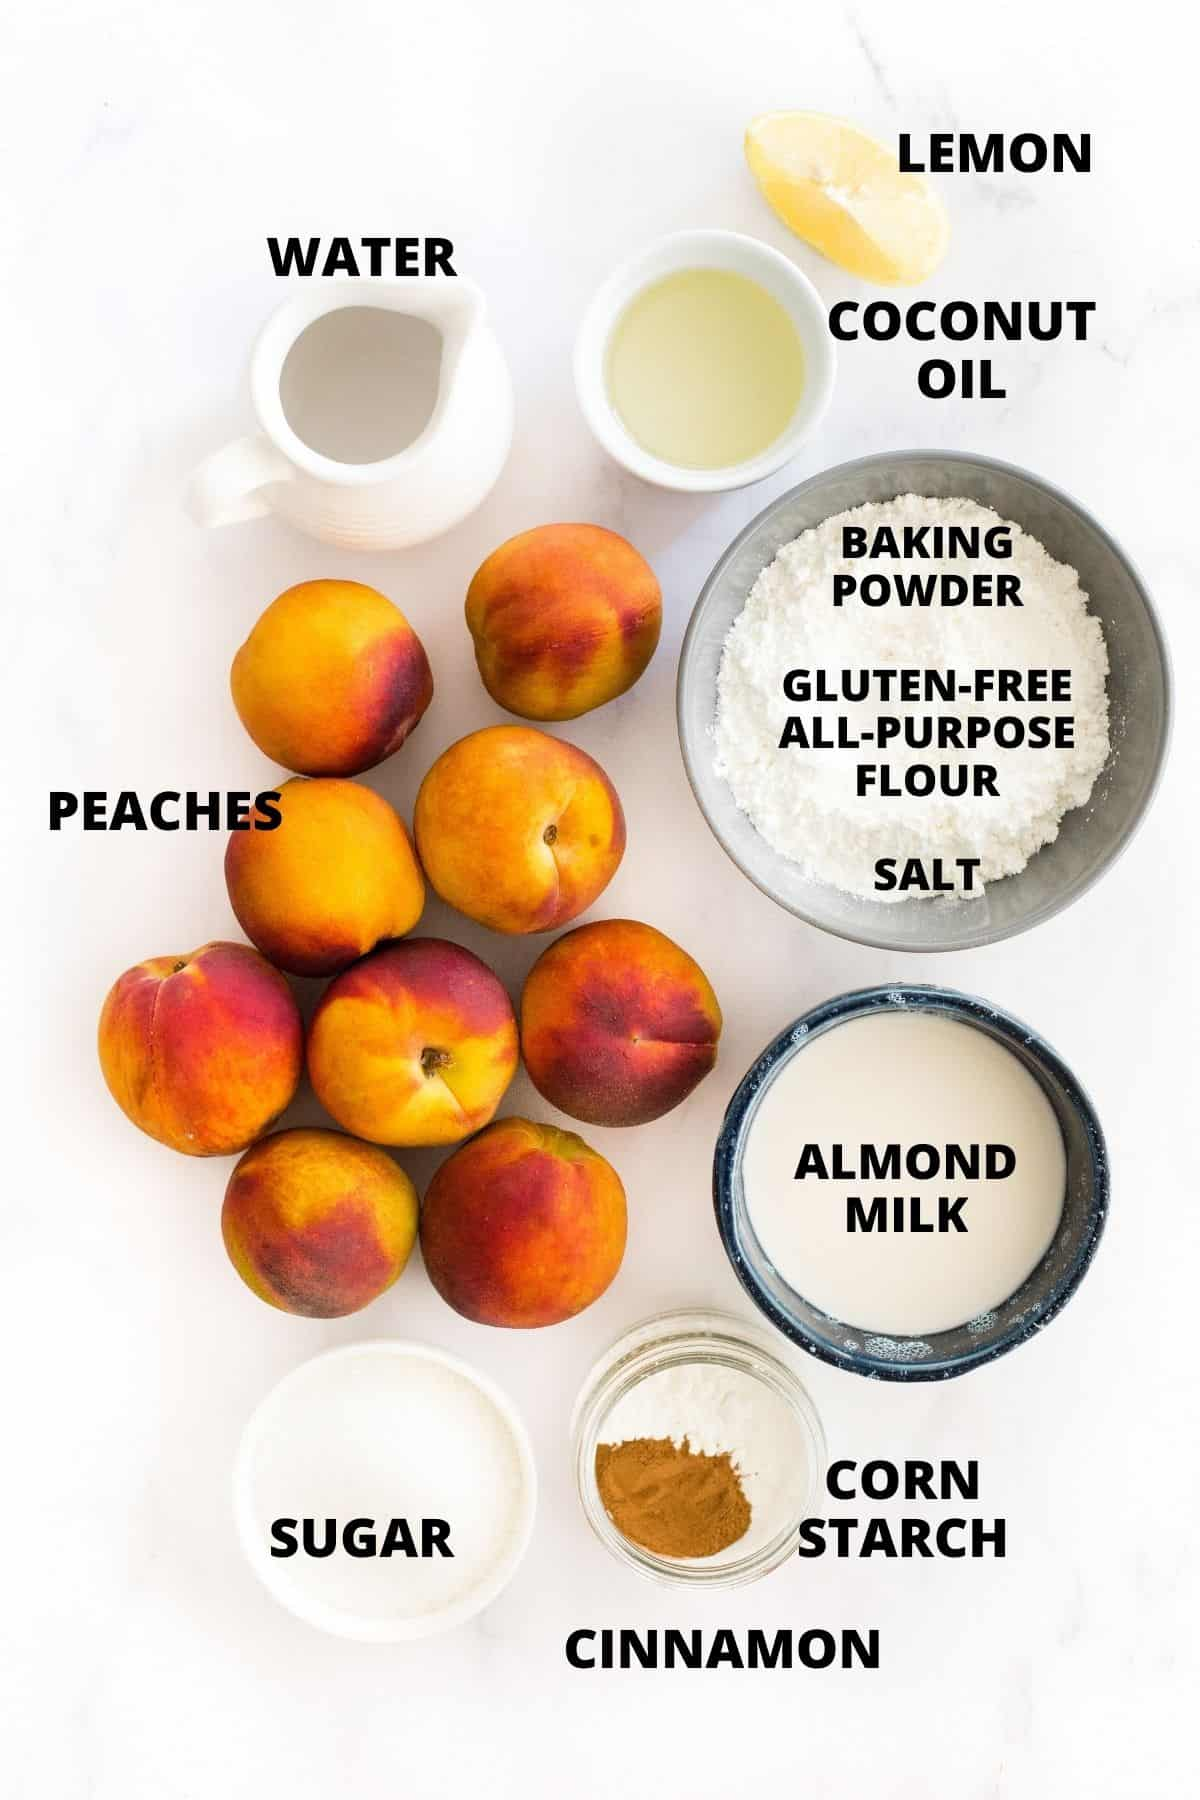 Ingredients for making peach cobbler laid out on marble board.